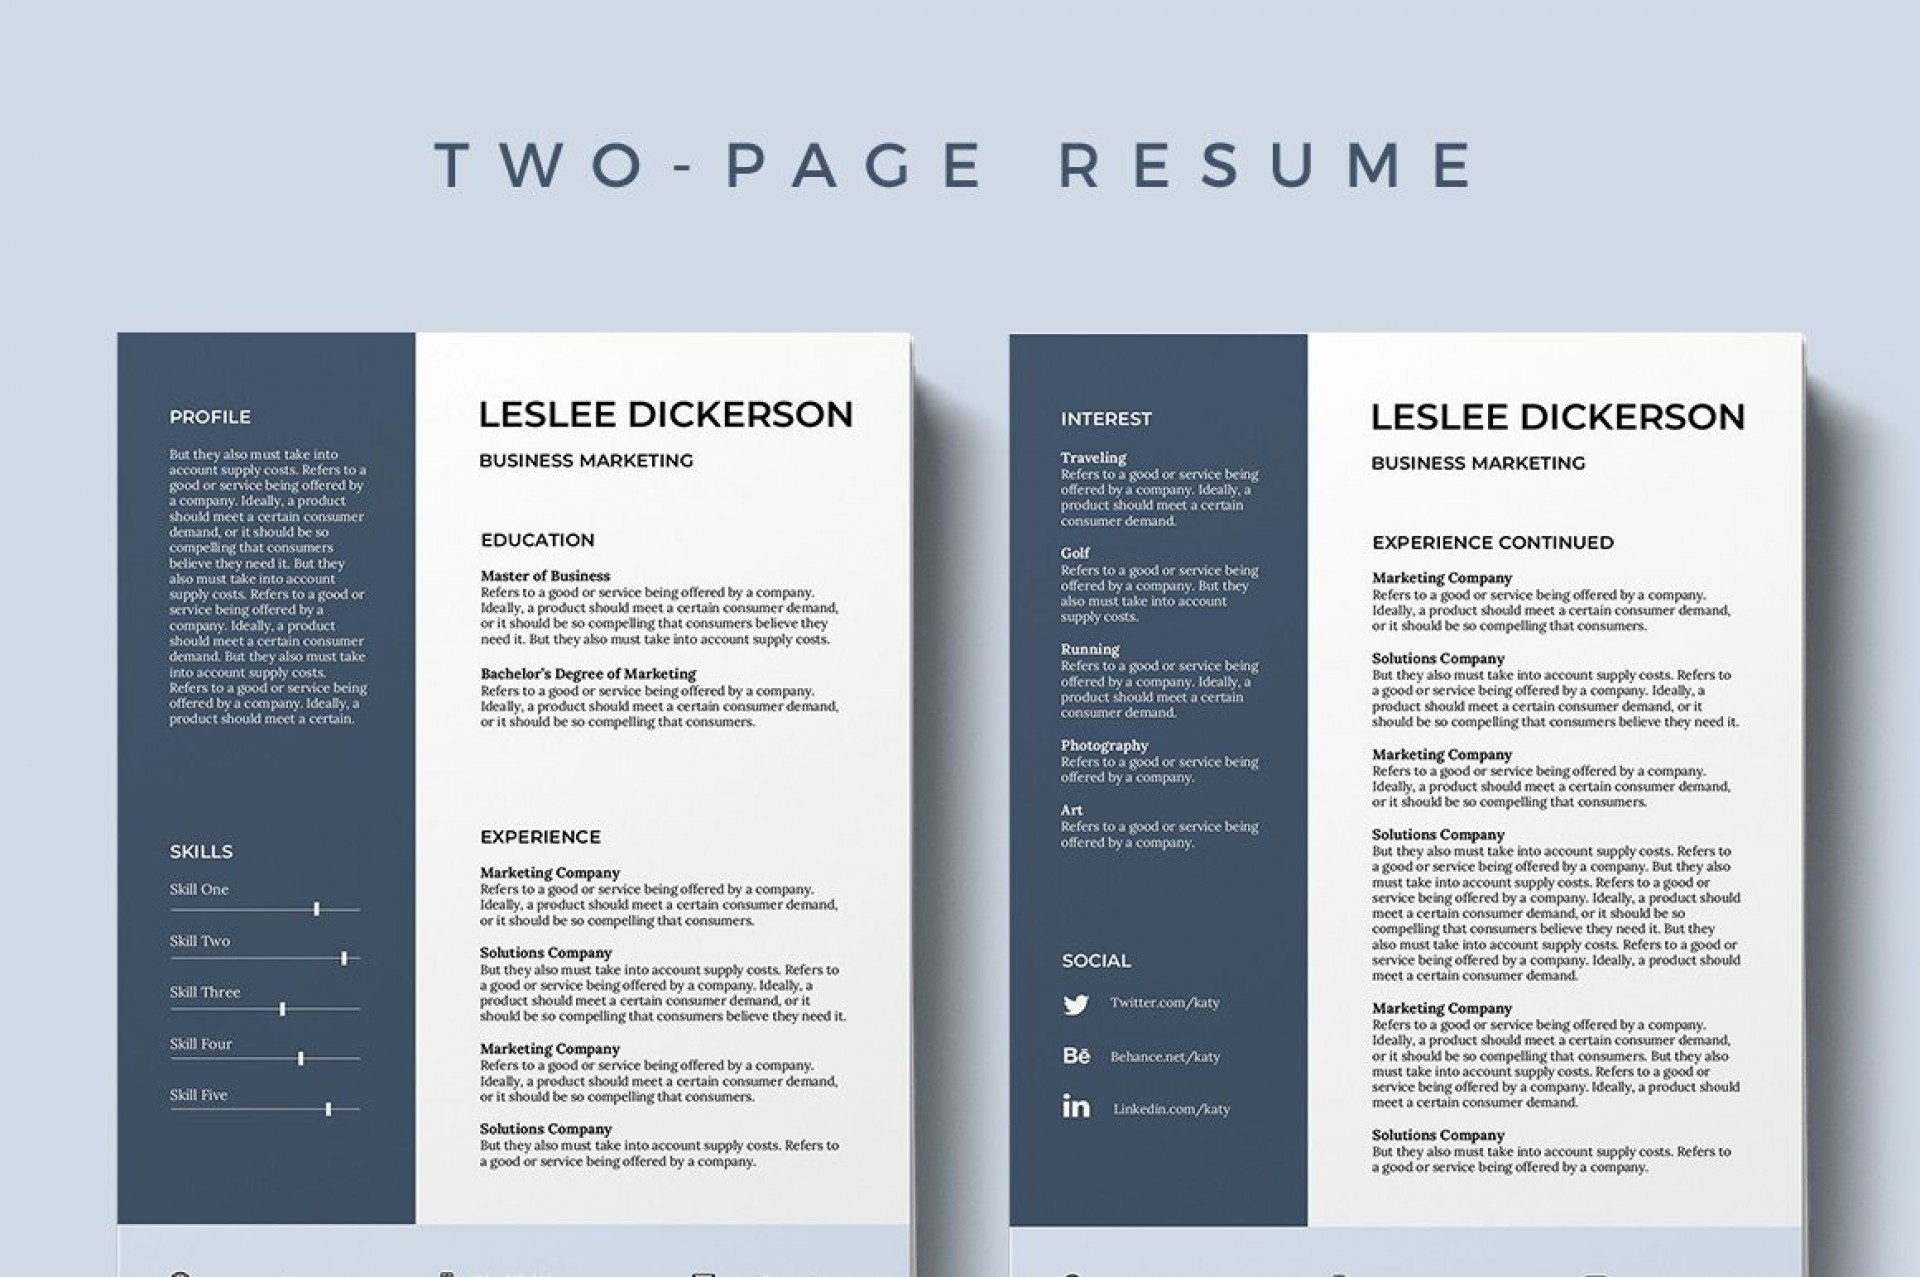 002 Wondrou Free Resume Download Template Idea  2020 Word Document Microsoft 20101920